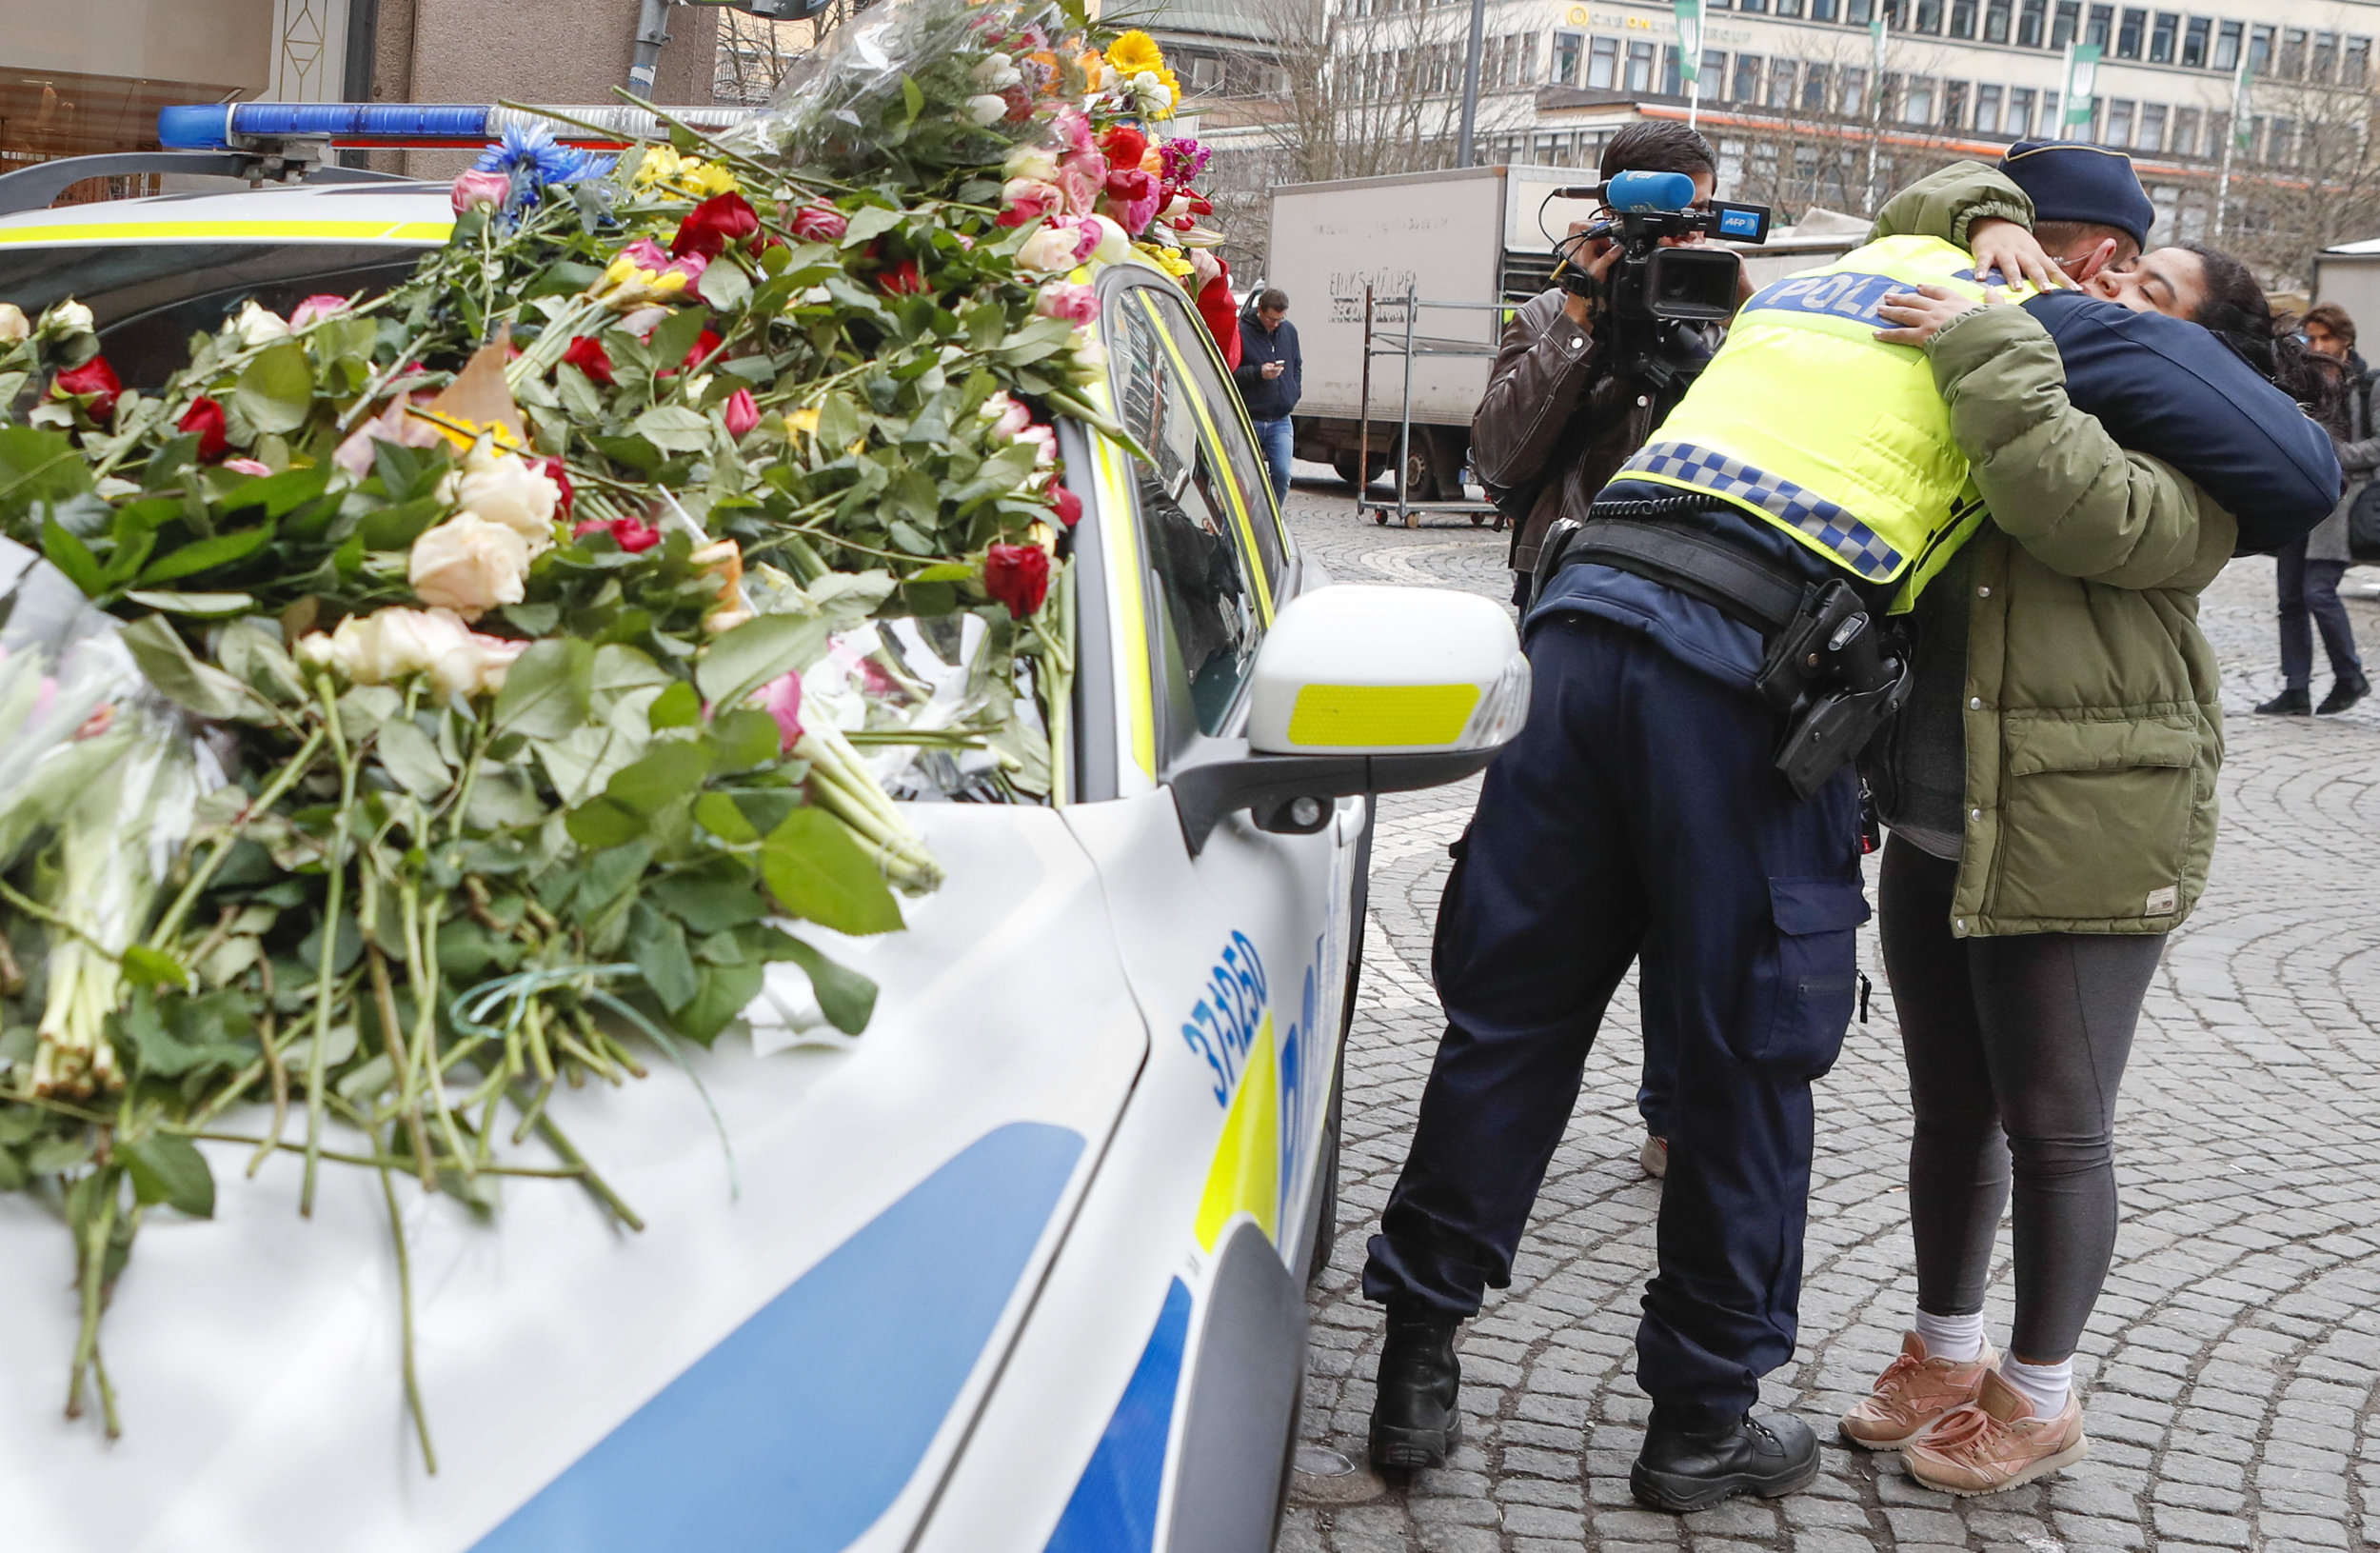 A young girl gives a cop a hug the day after the terrorist attack on Drottninggatan in Stockholm, Sweden.  Five people were killed including an eleven-year-old girl and 14 others were seriously injured.